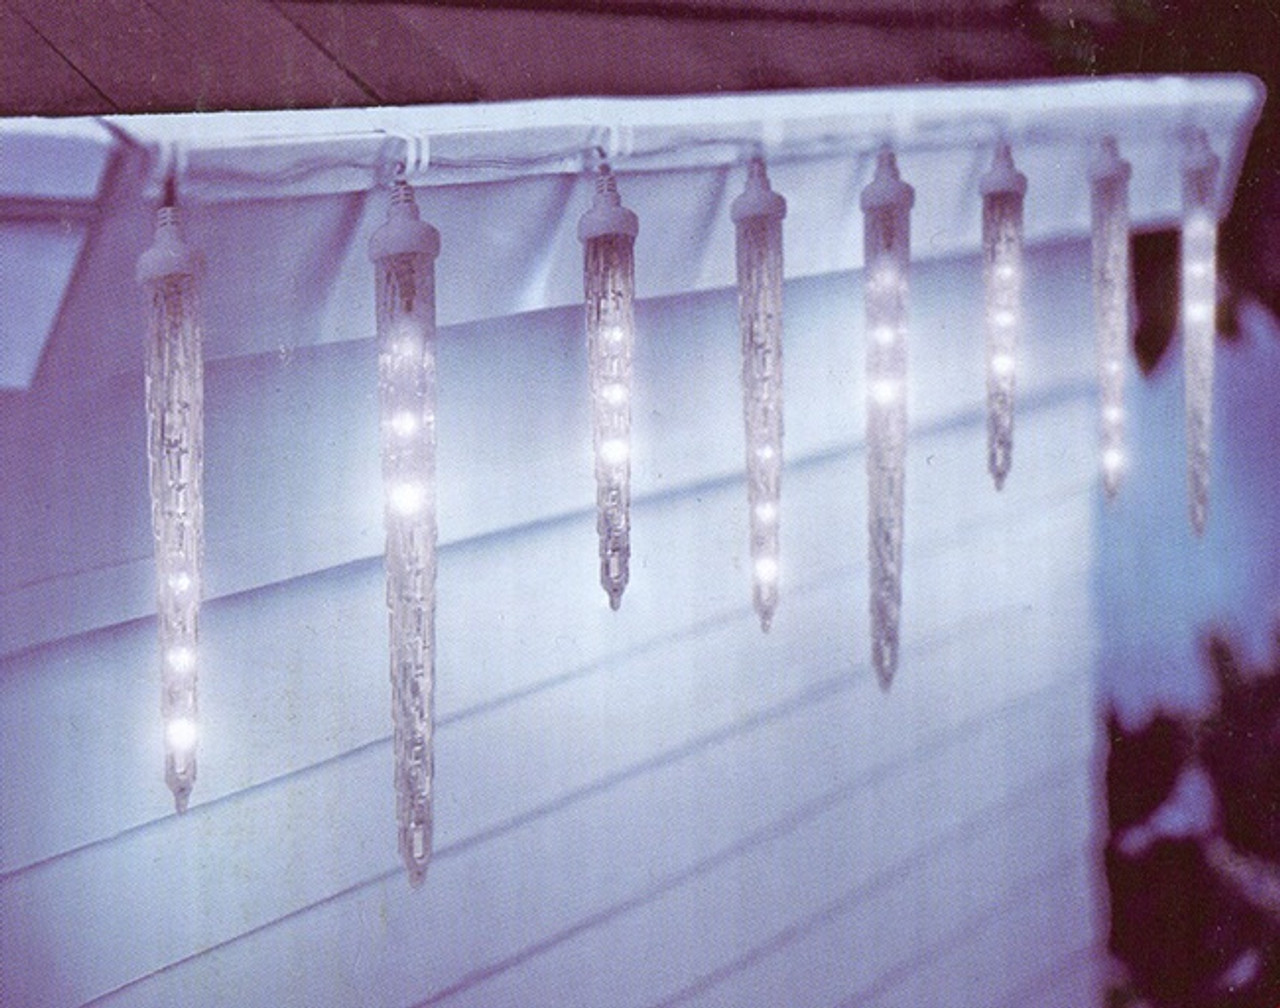 set of 10 clear led dripping icicle christmas lights white wire 30955616 - Dripping Icicle Christmas Lights